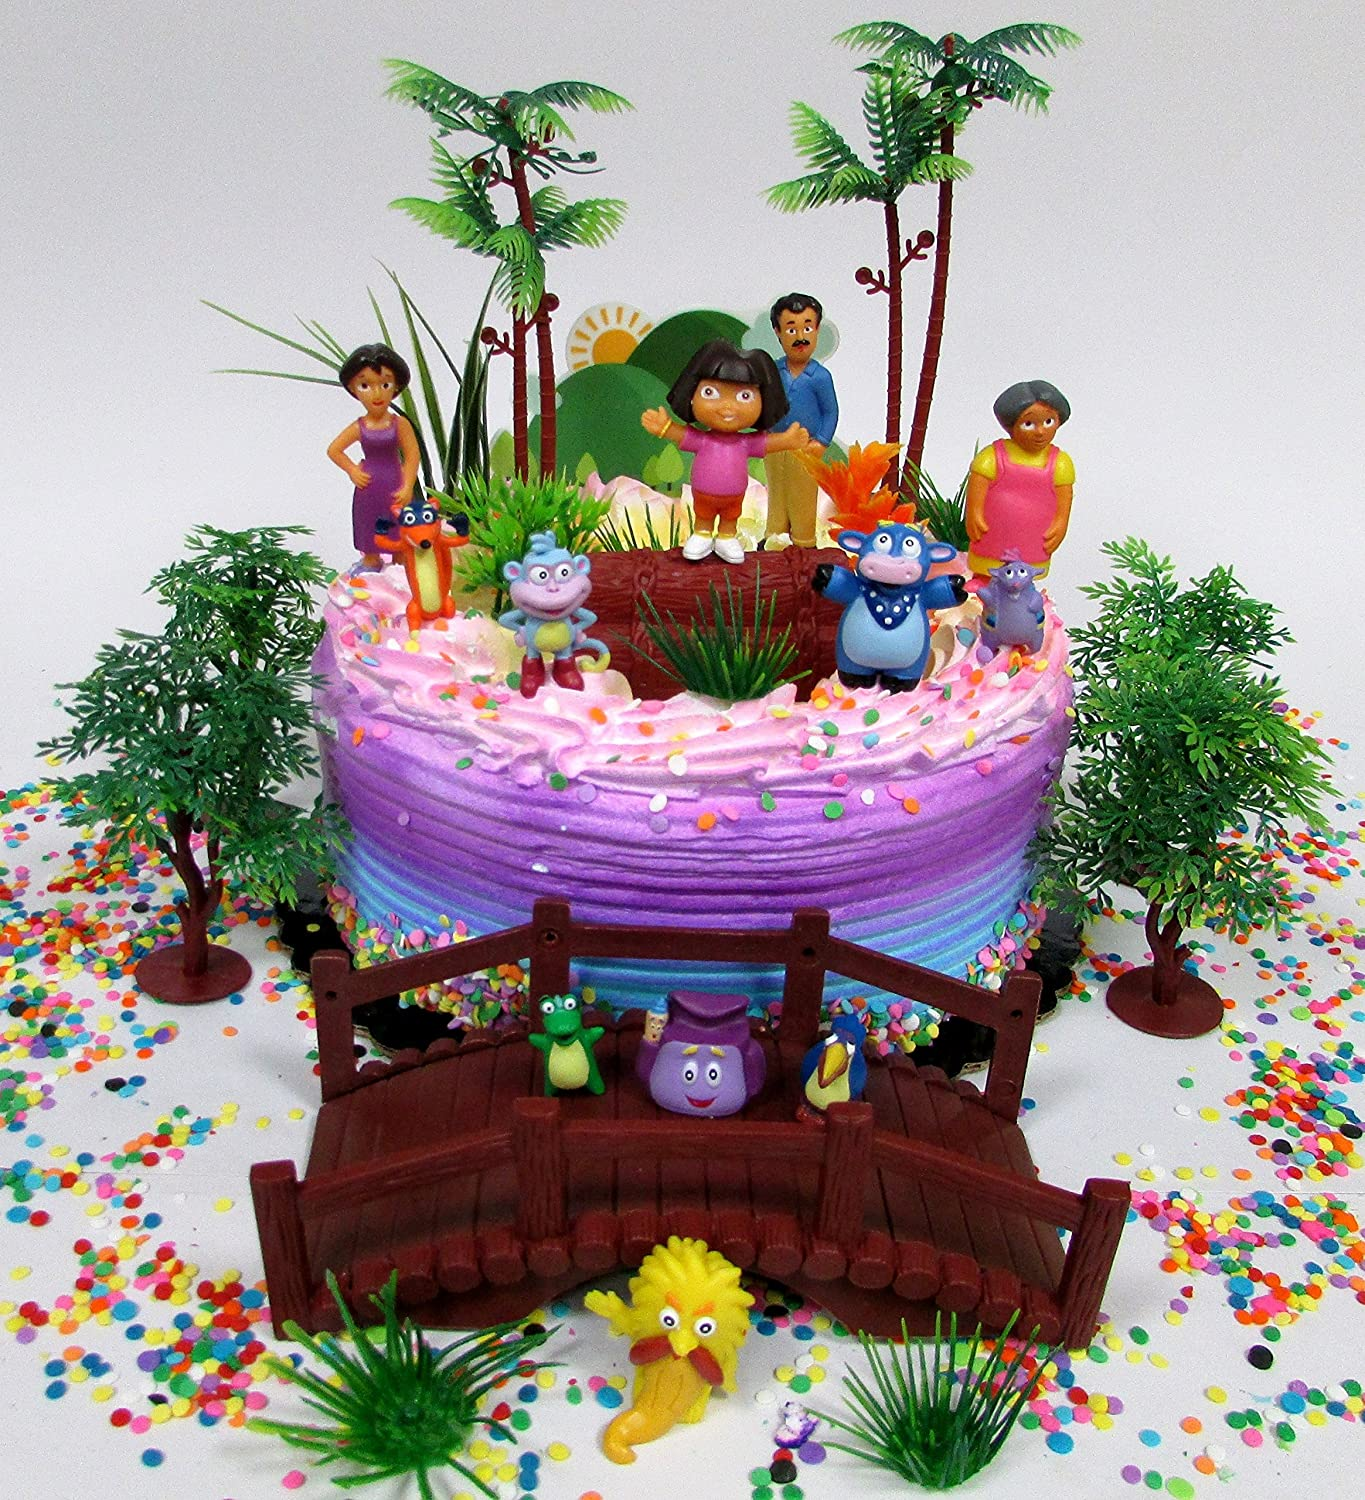 Buy Cake Toppers Dora The Explorer And Friends Birthday Cake Topper Set Featuring Figures And Decorative Themed Accessories Online At Low Prices In India Amazon In